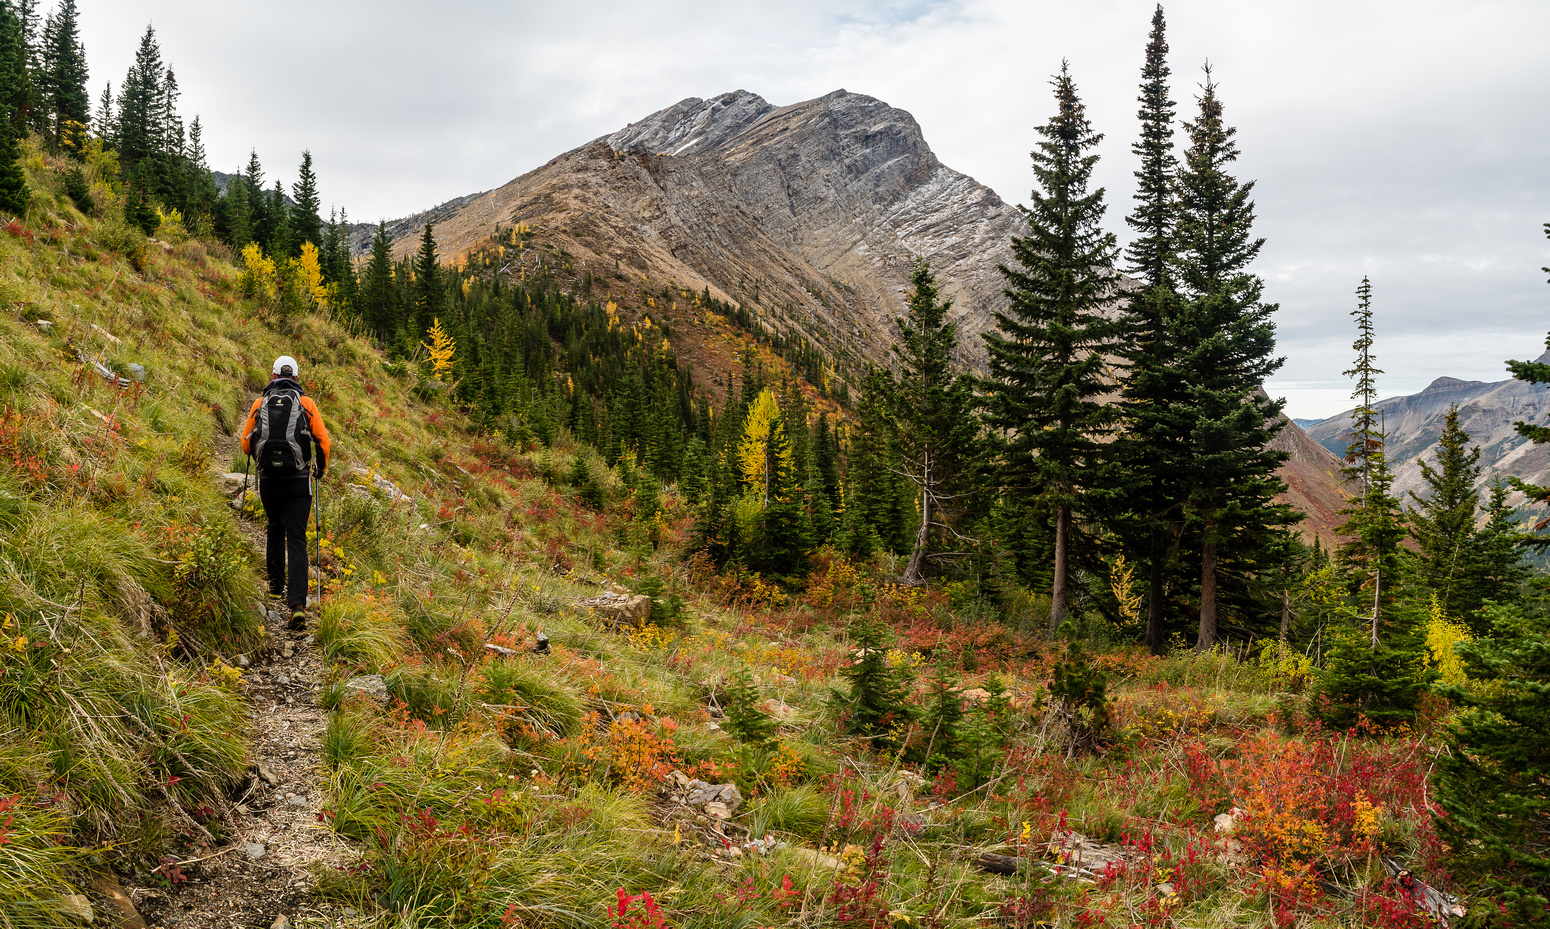 At this point we weren't sure yet how we were going to access Three Lakes Ridge from Rainy Ridge.